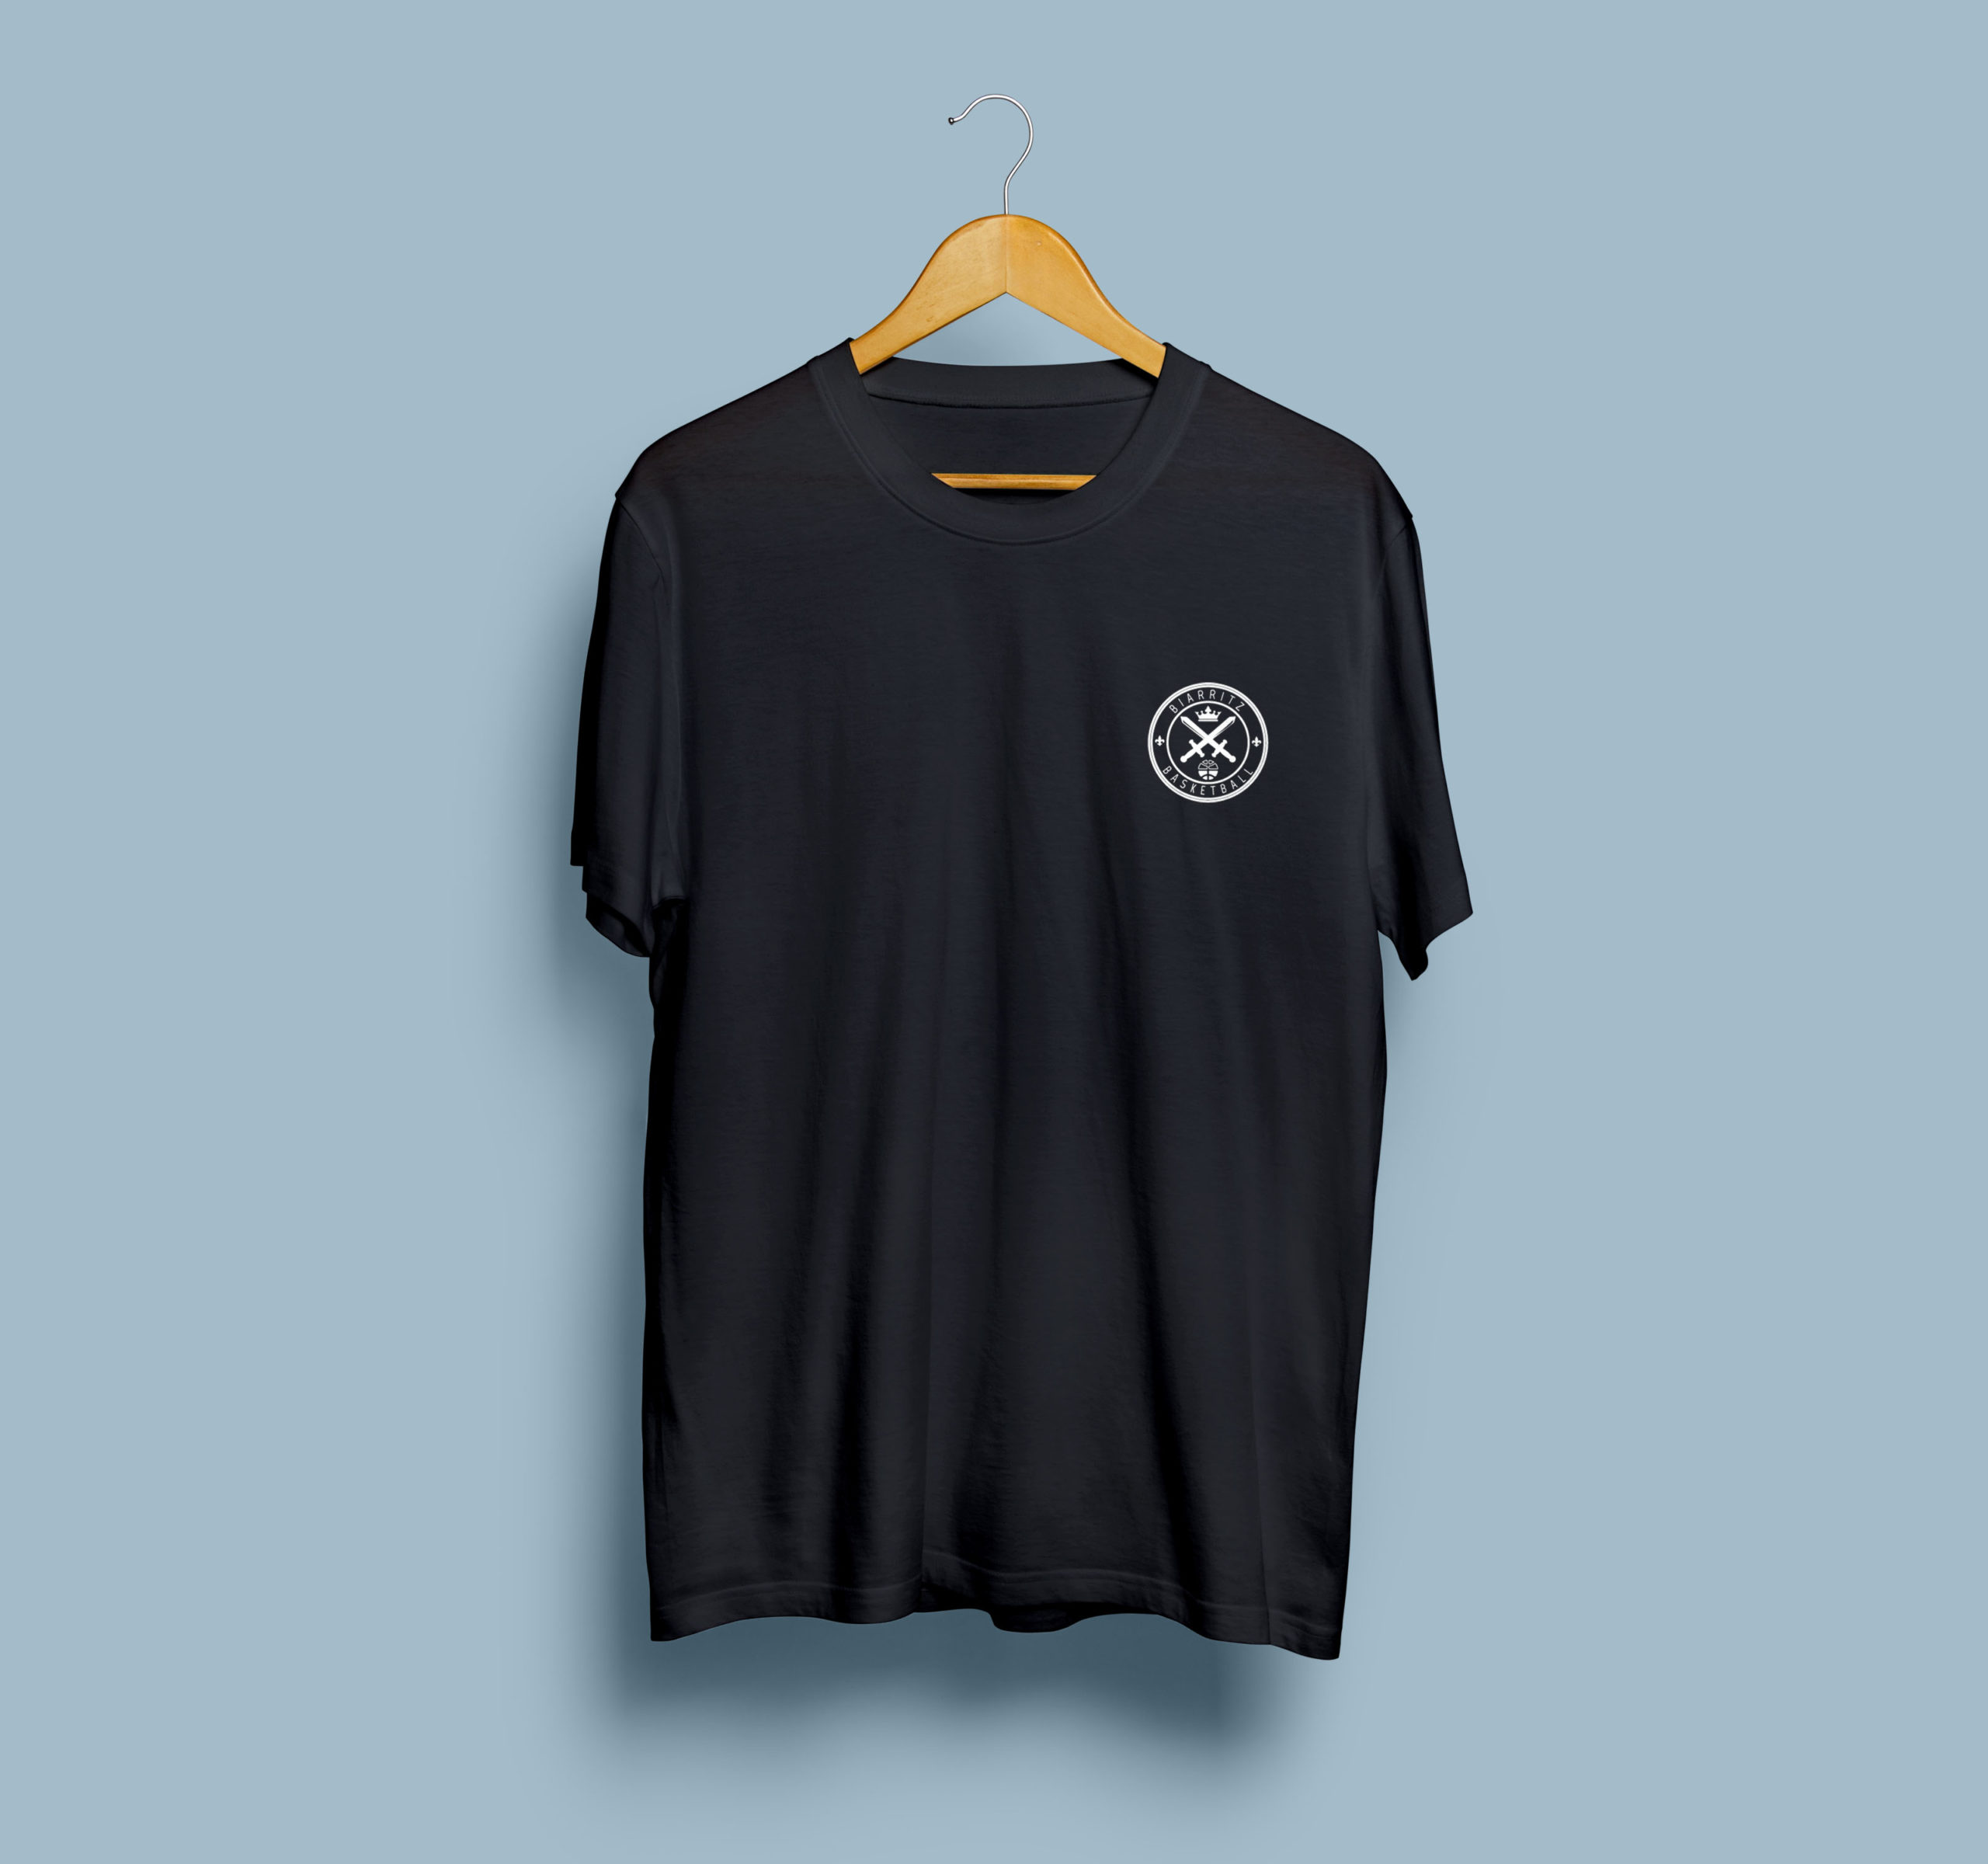 T-Shirt Mock-Up Frontblack